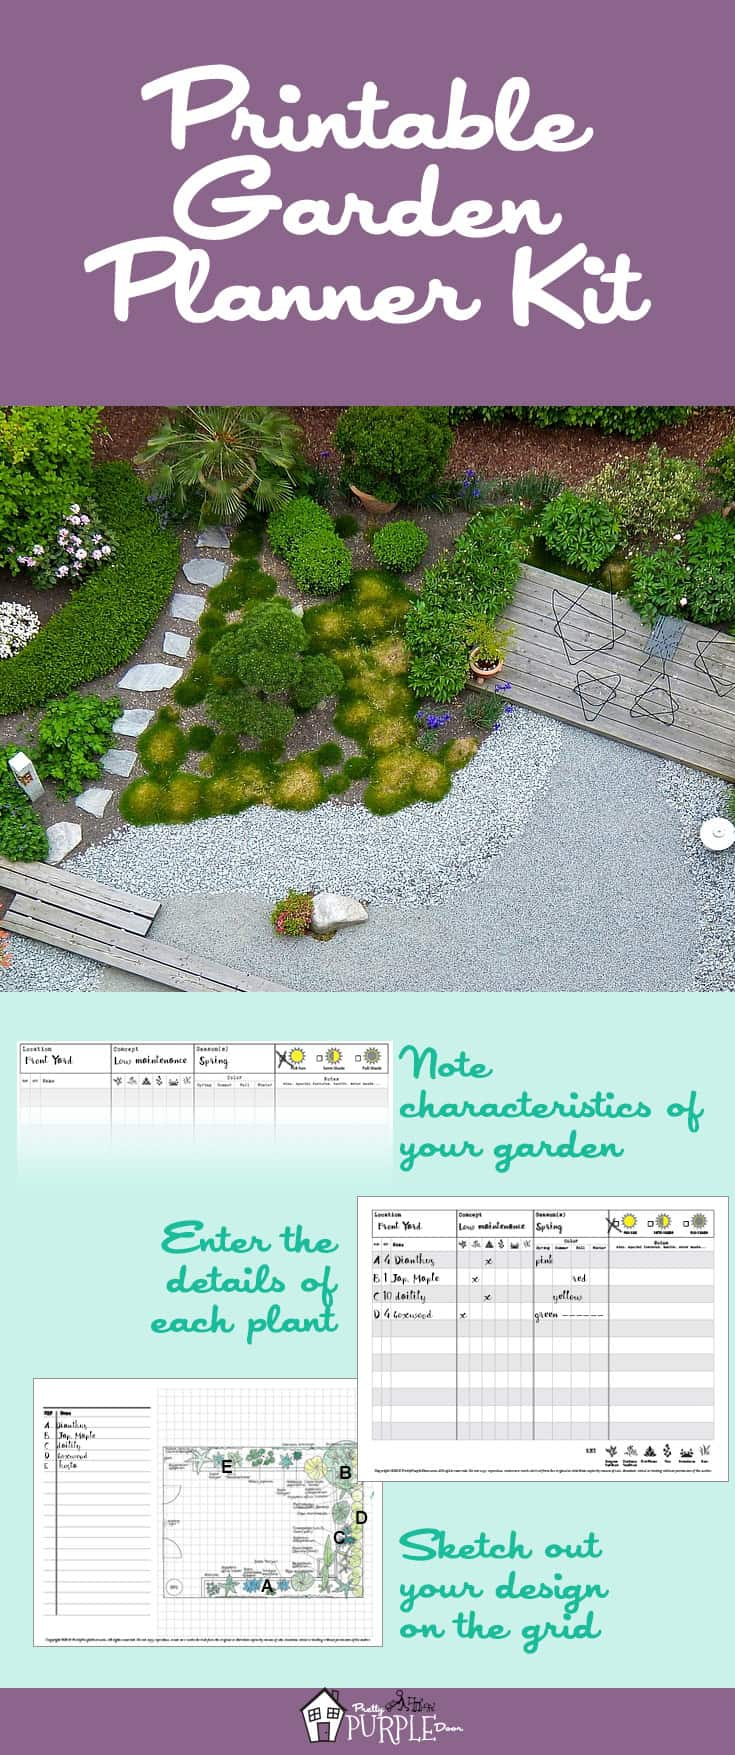 image regarding Free Printable Garden Planner titled Printable Yard Planner Package Incredibly Red Doorway